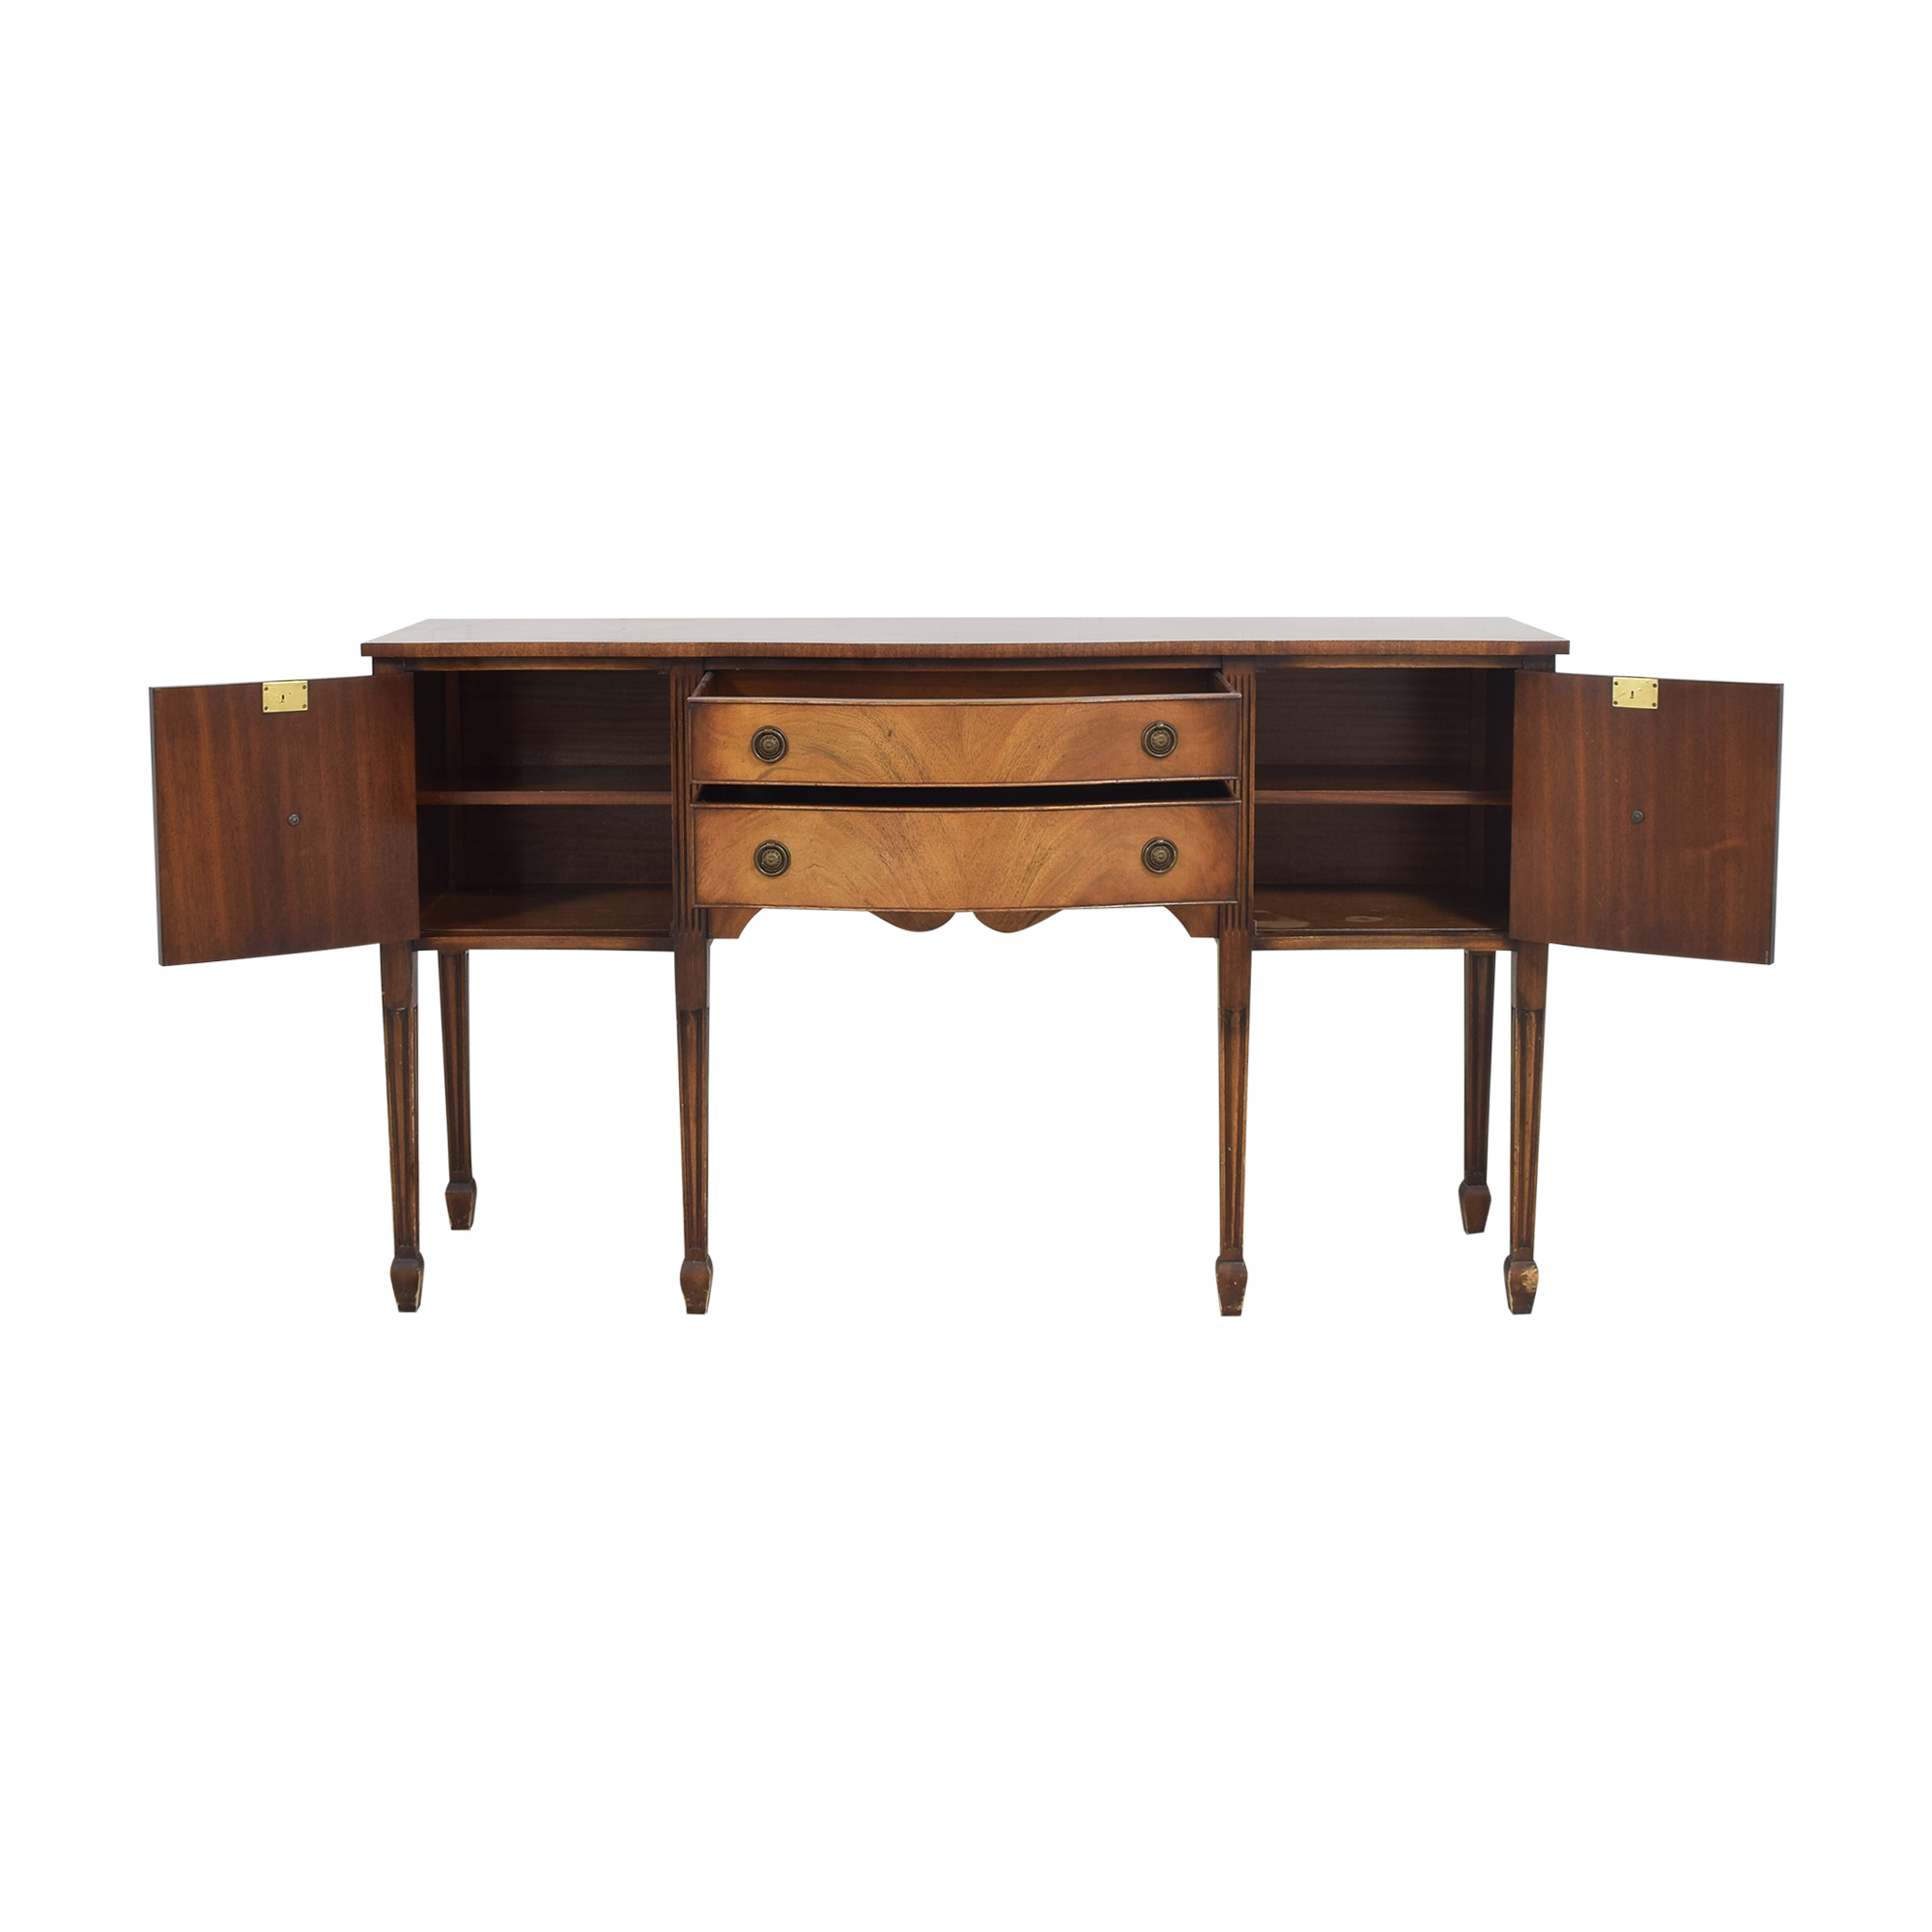 Bevan Funnell-Reprodux Console Table discount